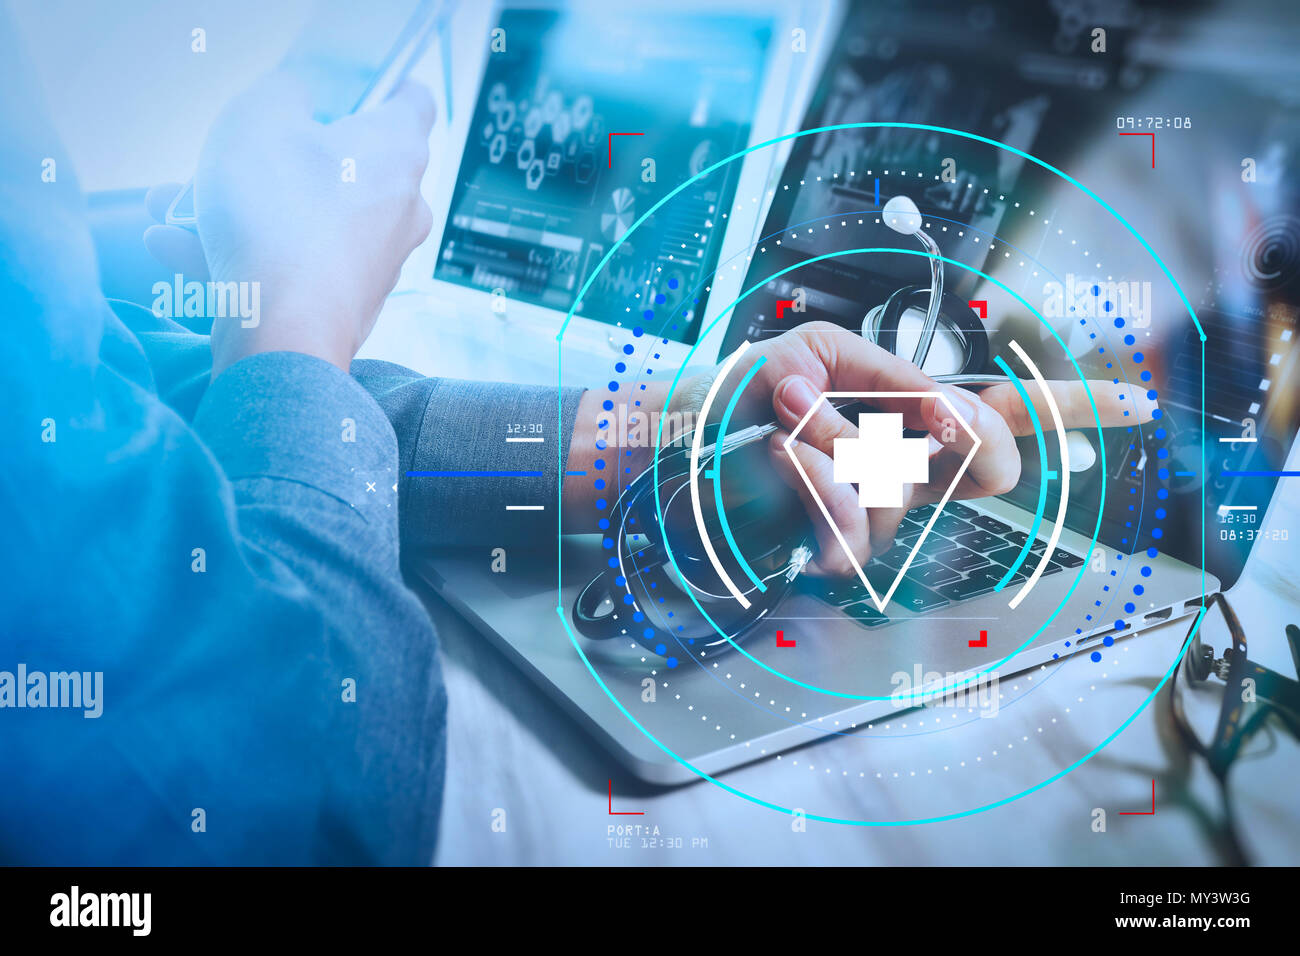 hight resolution of health care and medical services with circular ar diagram doctor working with digital tablet and laptop computer with smart phone in medical workspace